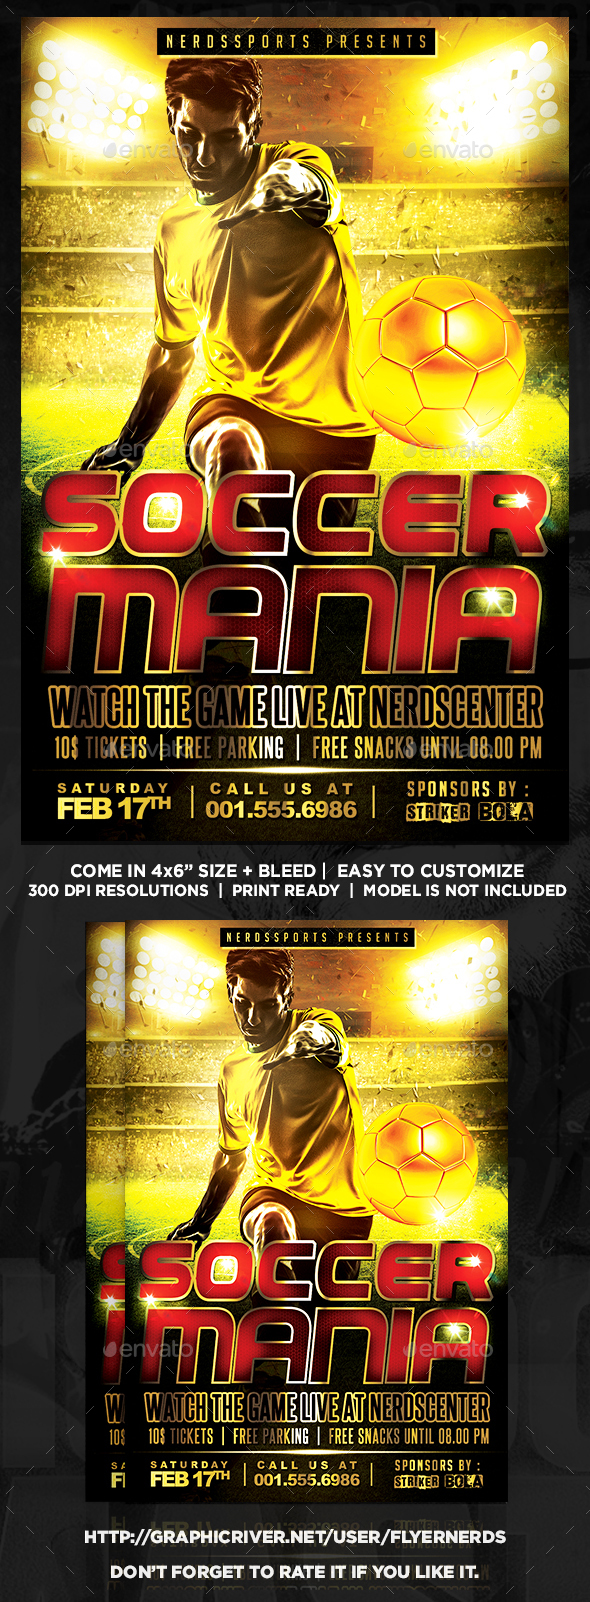 Soccer Mania Sports Flyer - Sports Events